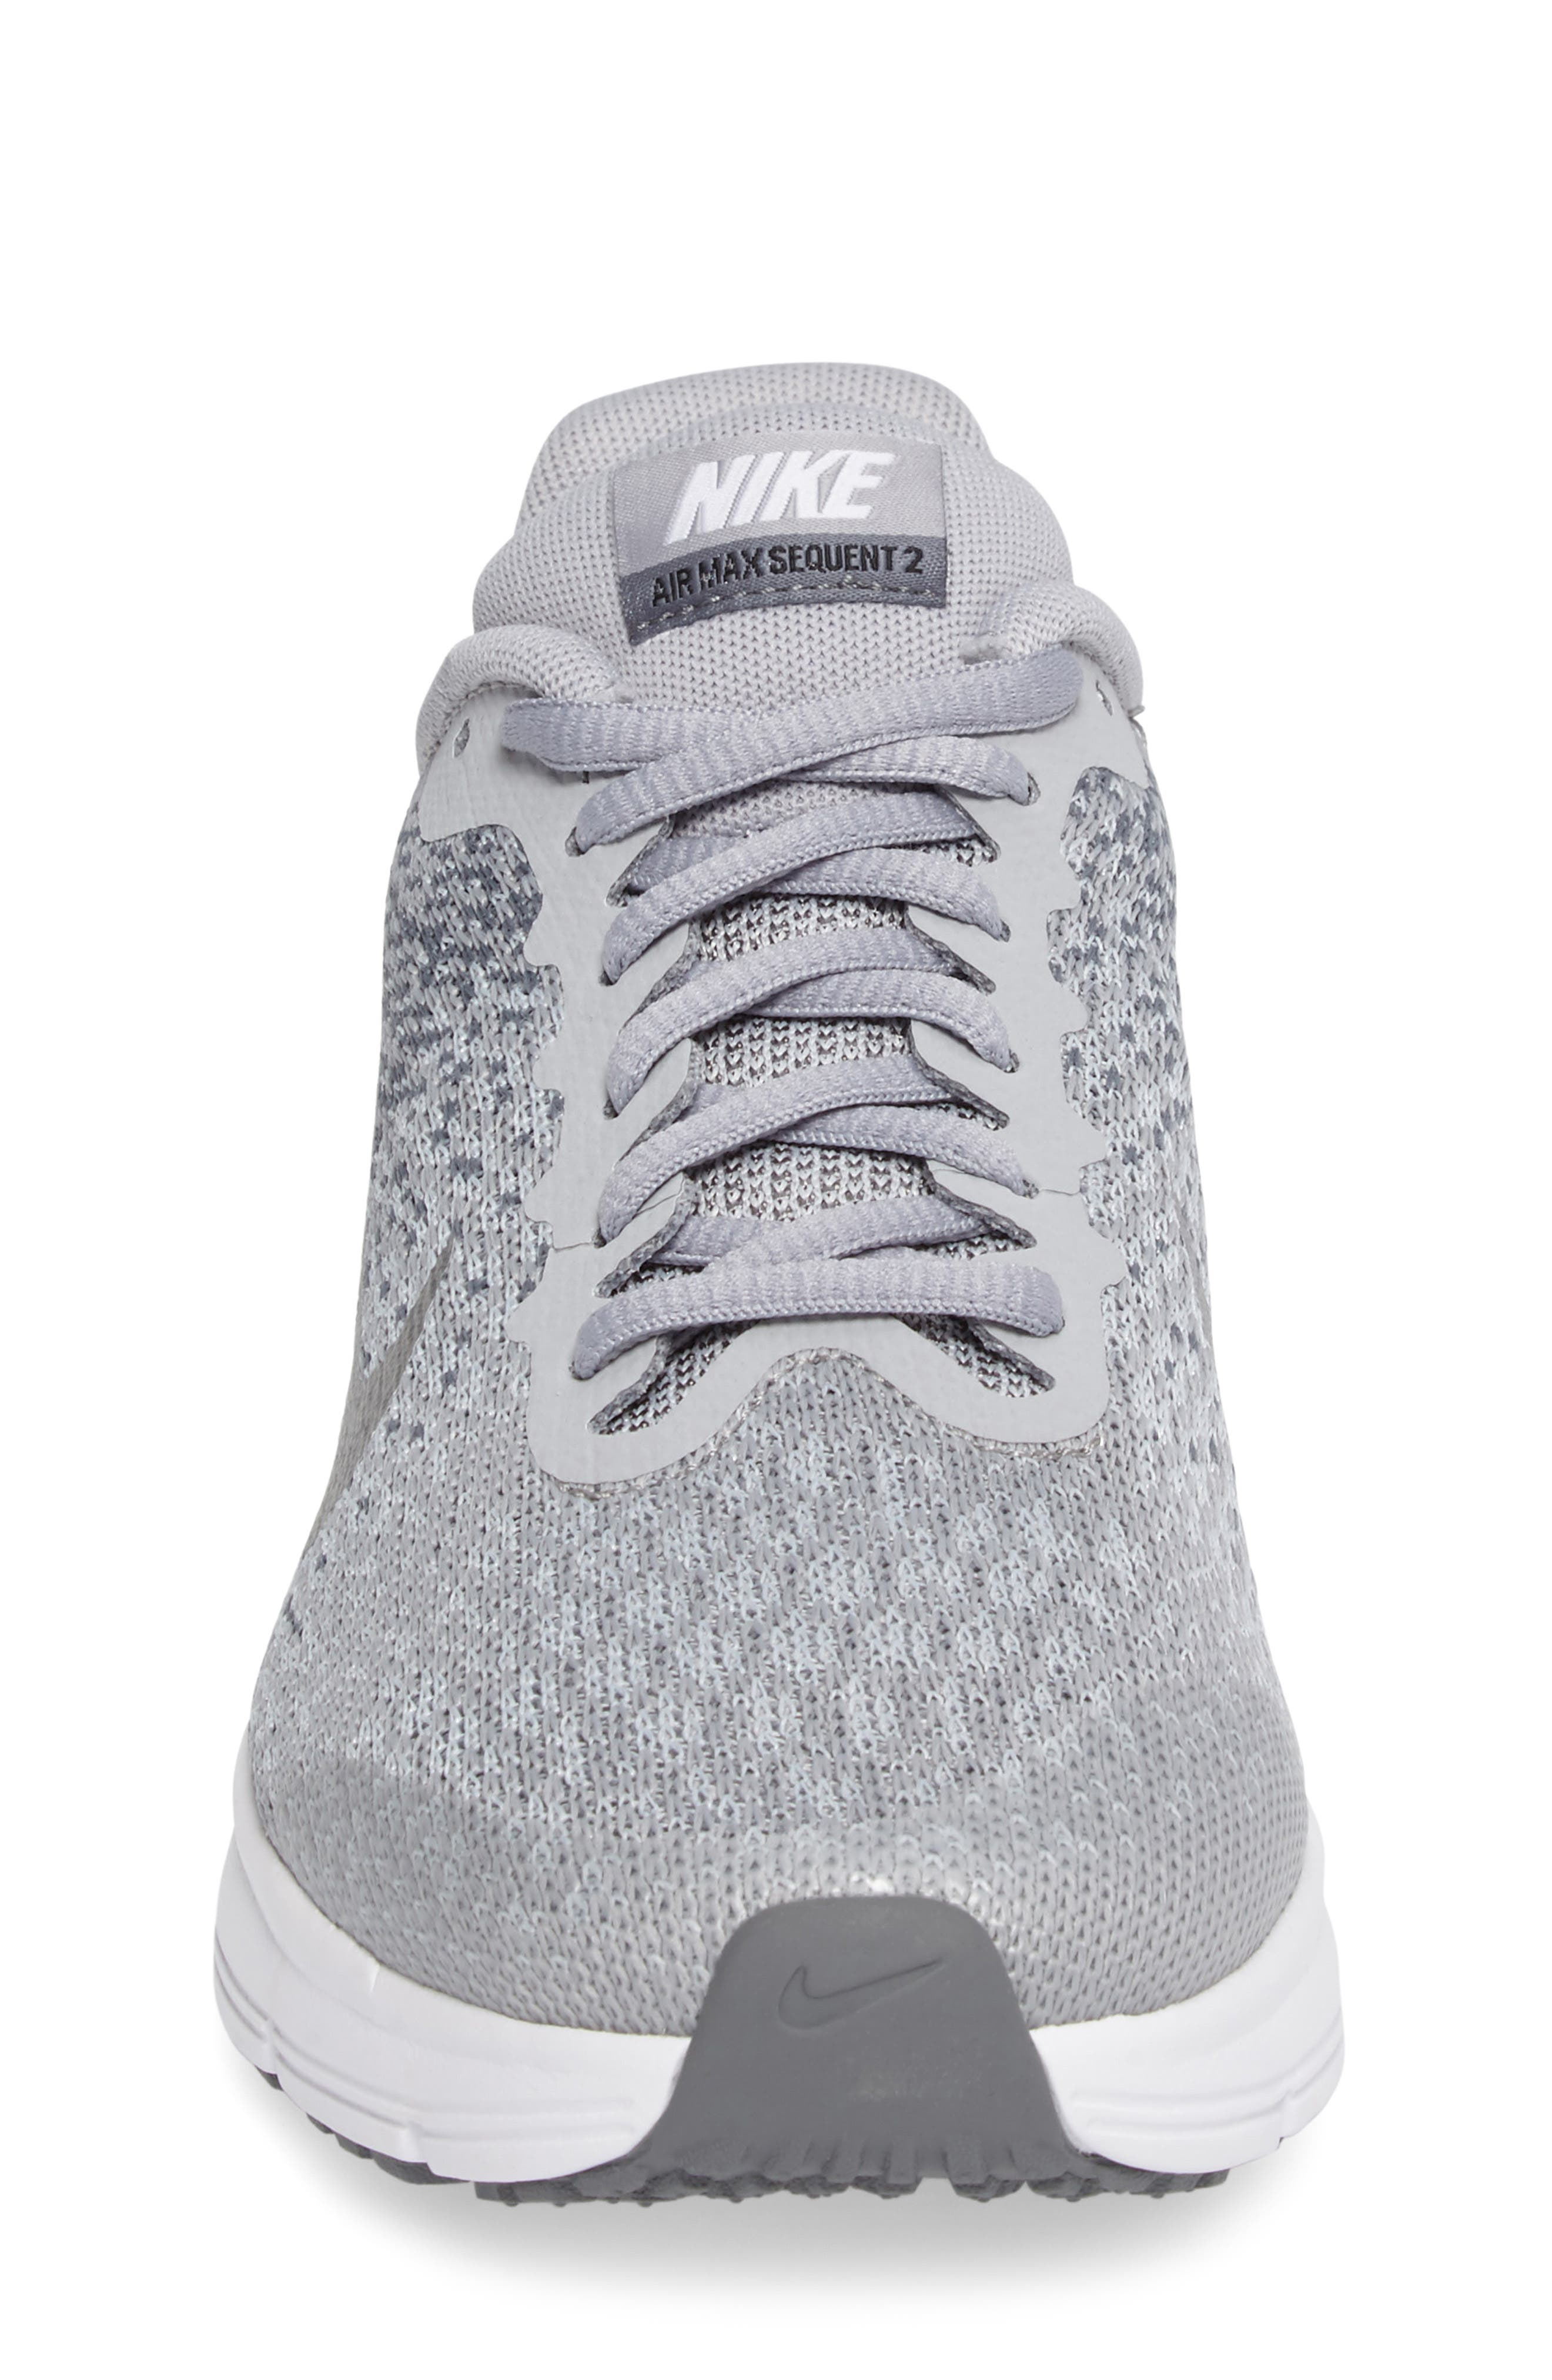 Air Max Sequent 2 Sneaker,                             Alternate thumbnail 4, color,                             020